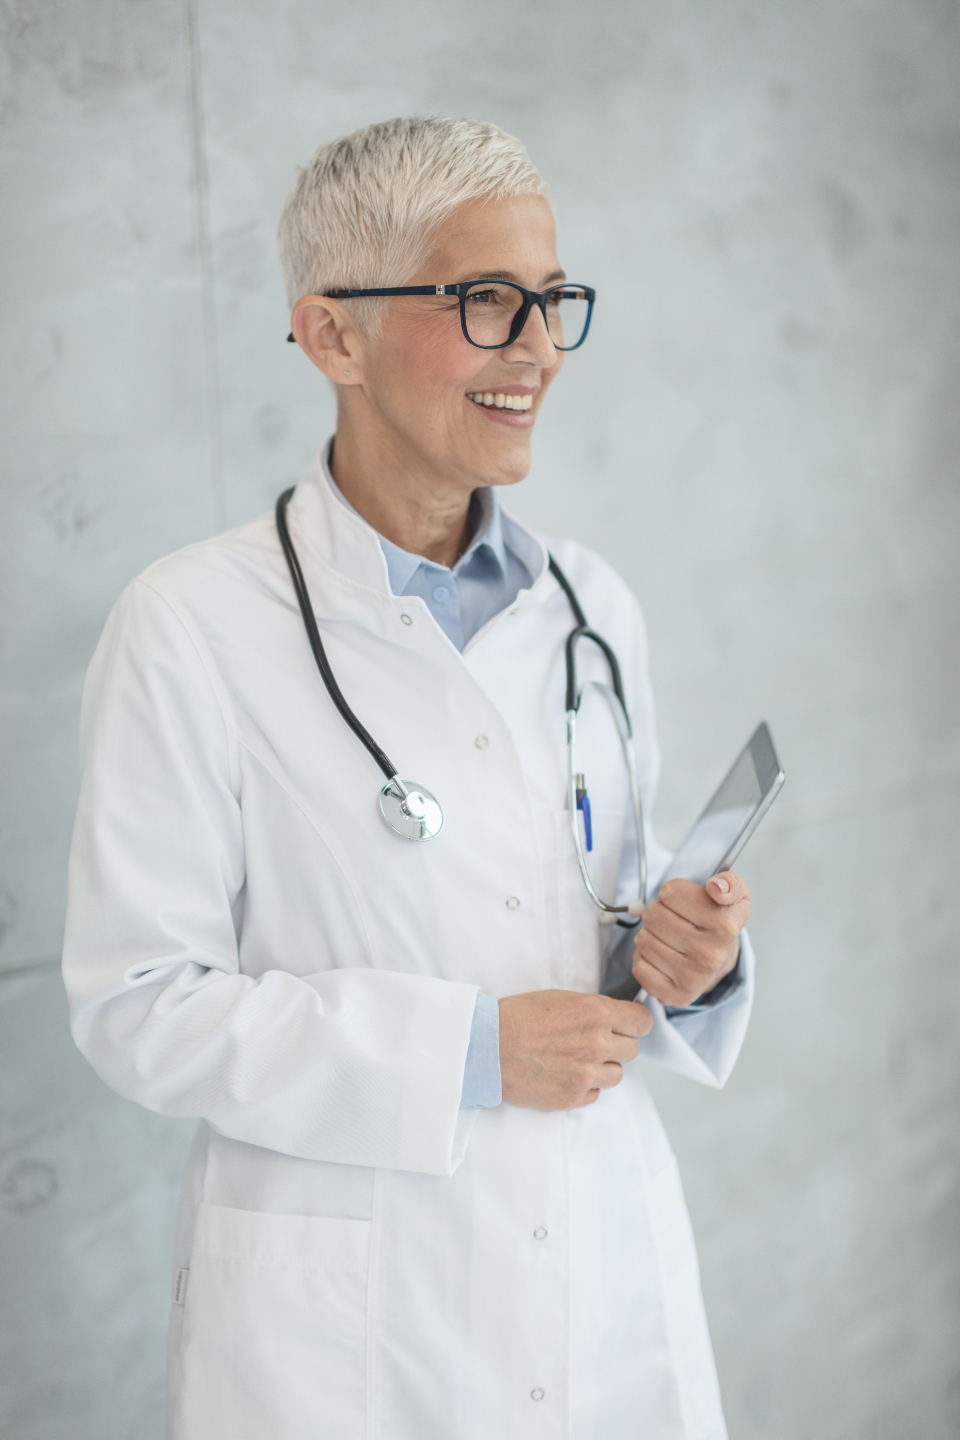 Free stock photo of female doctor